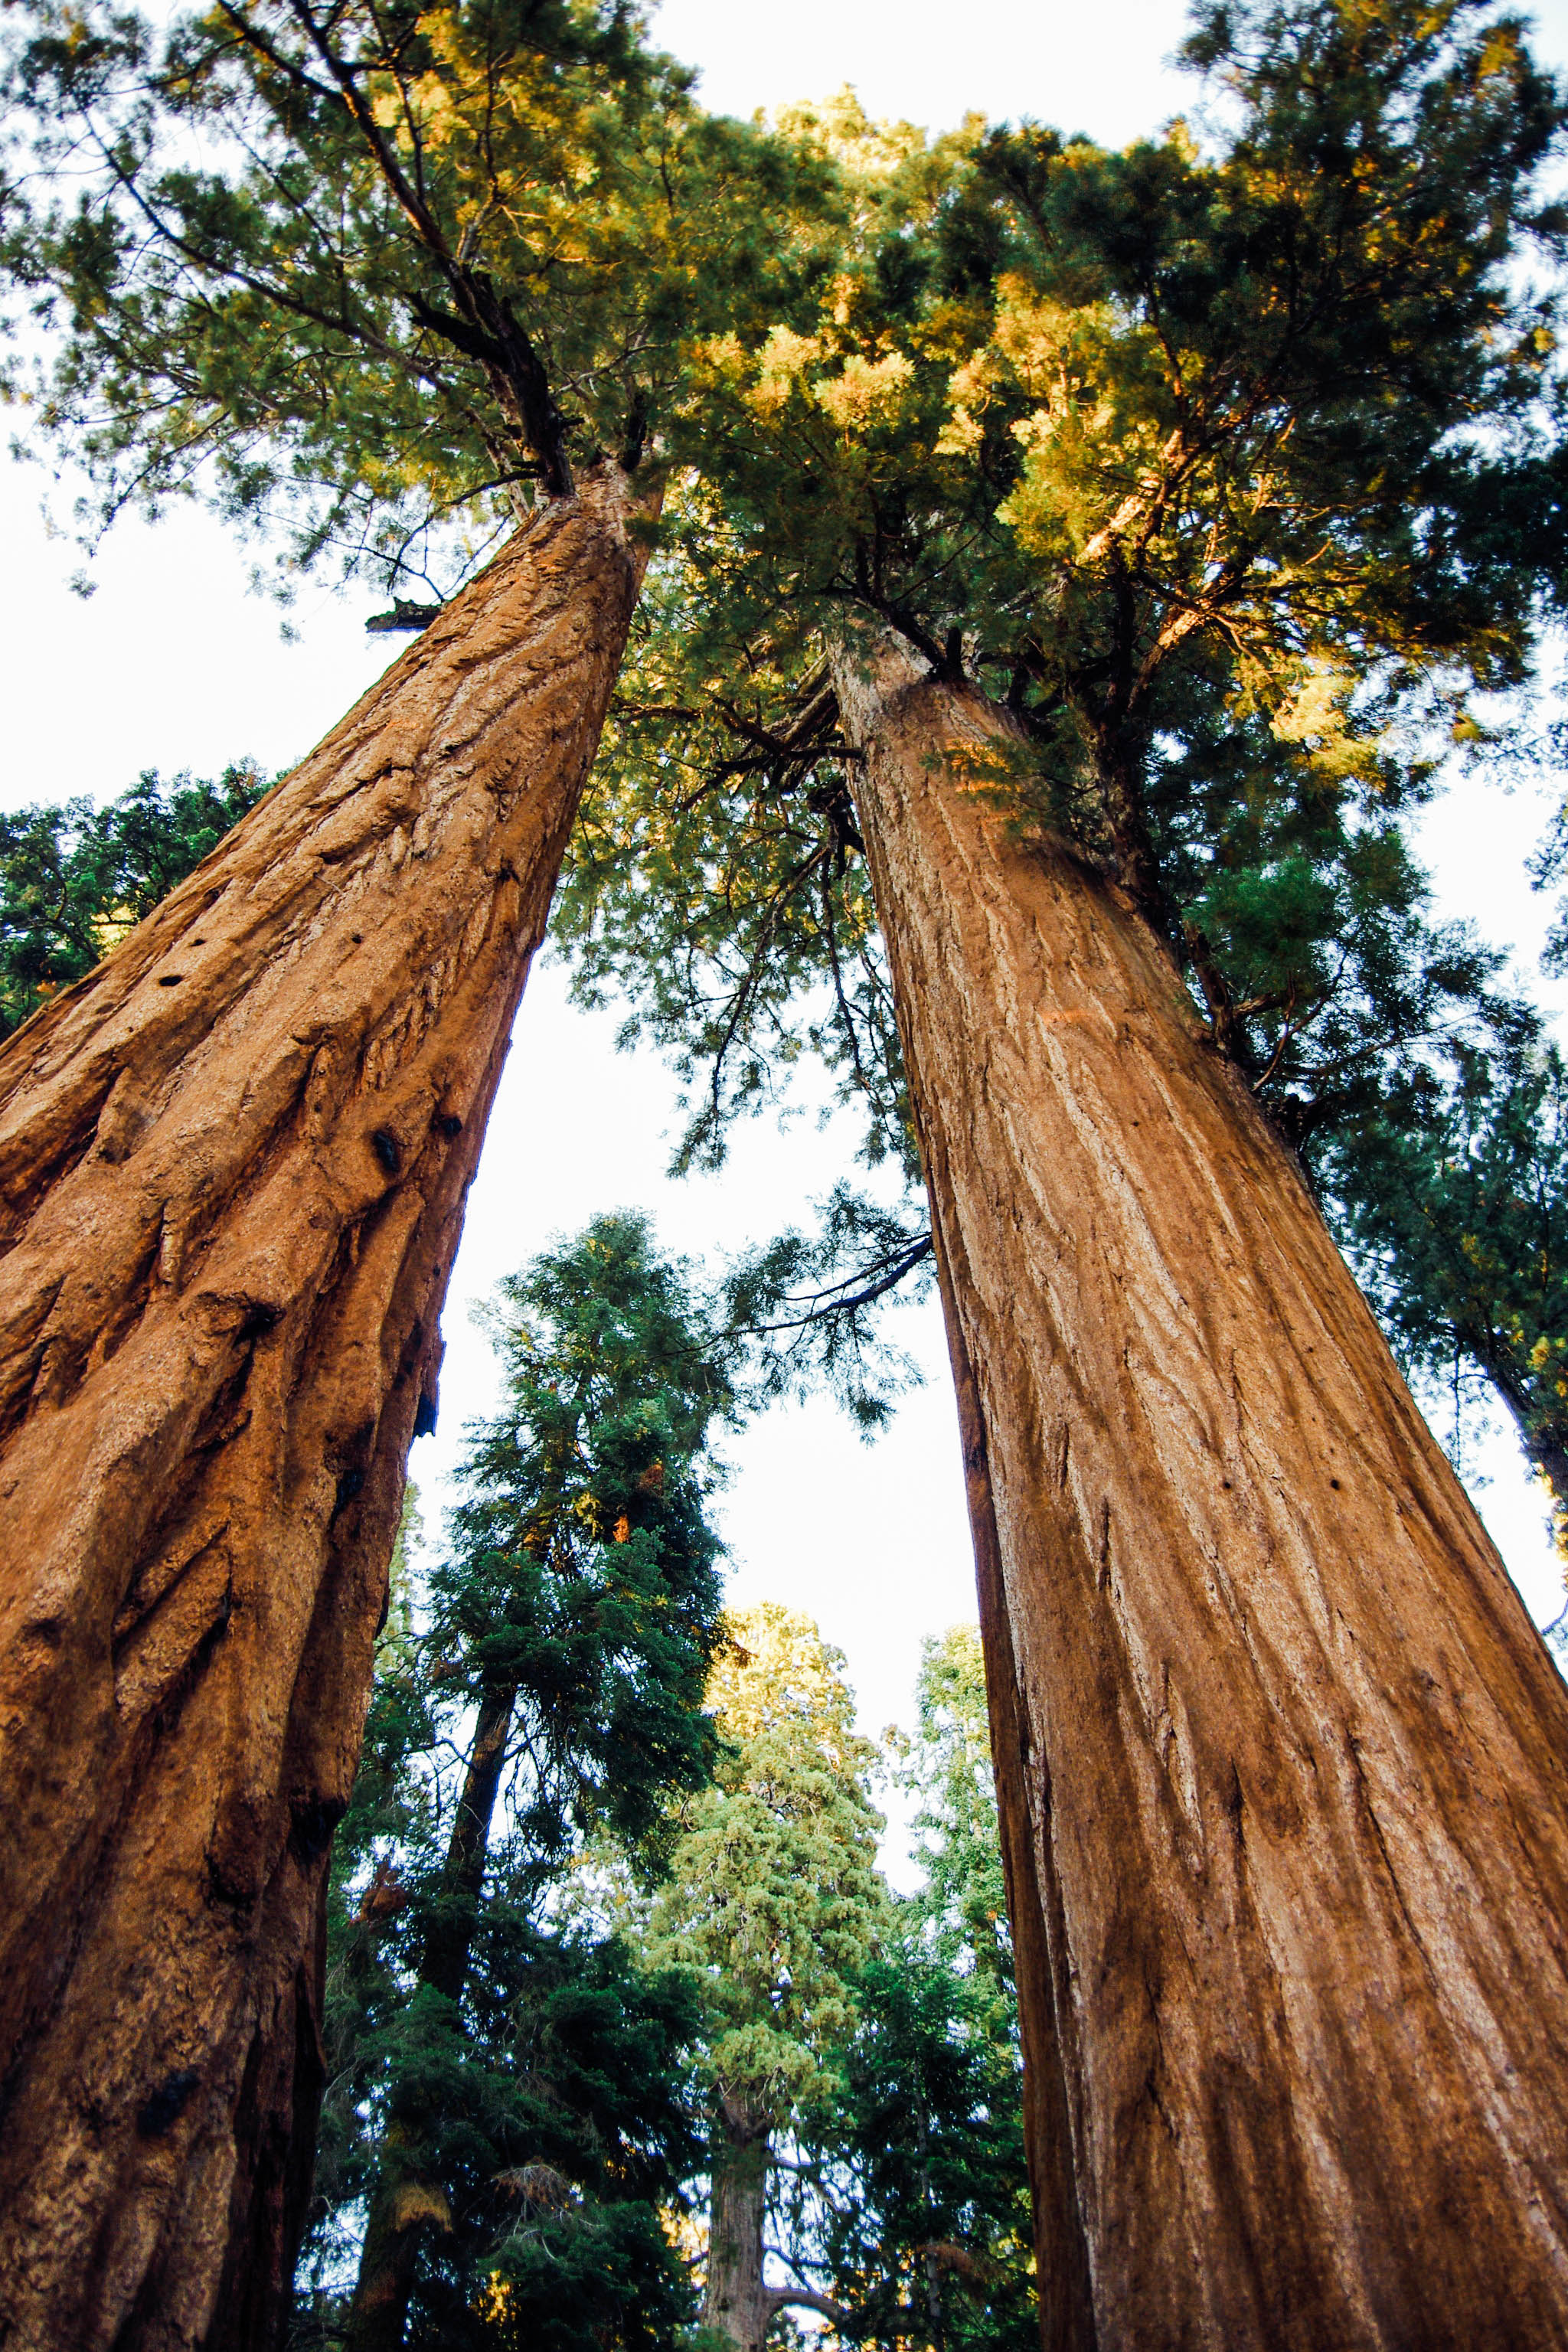 Elope amongest the giants in Sequoia national park